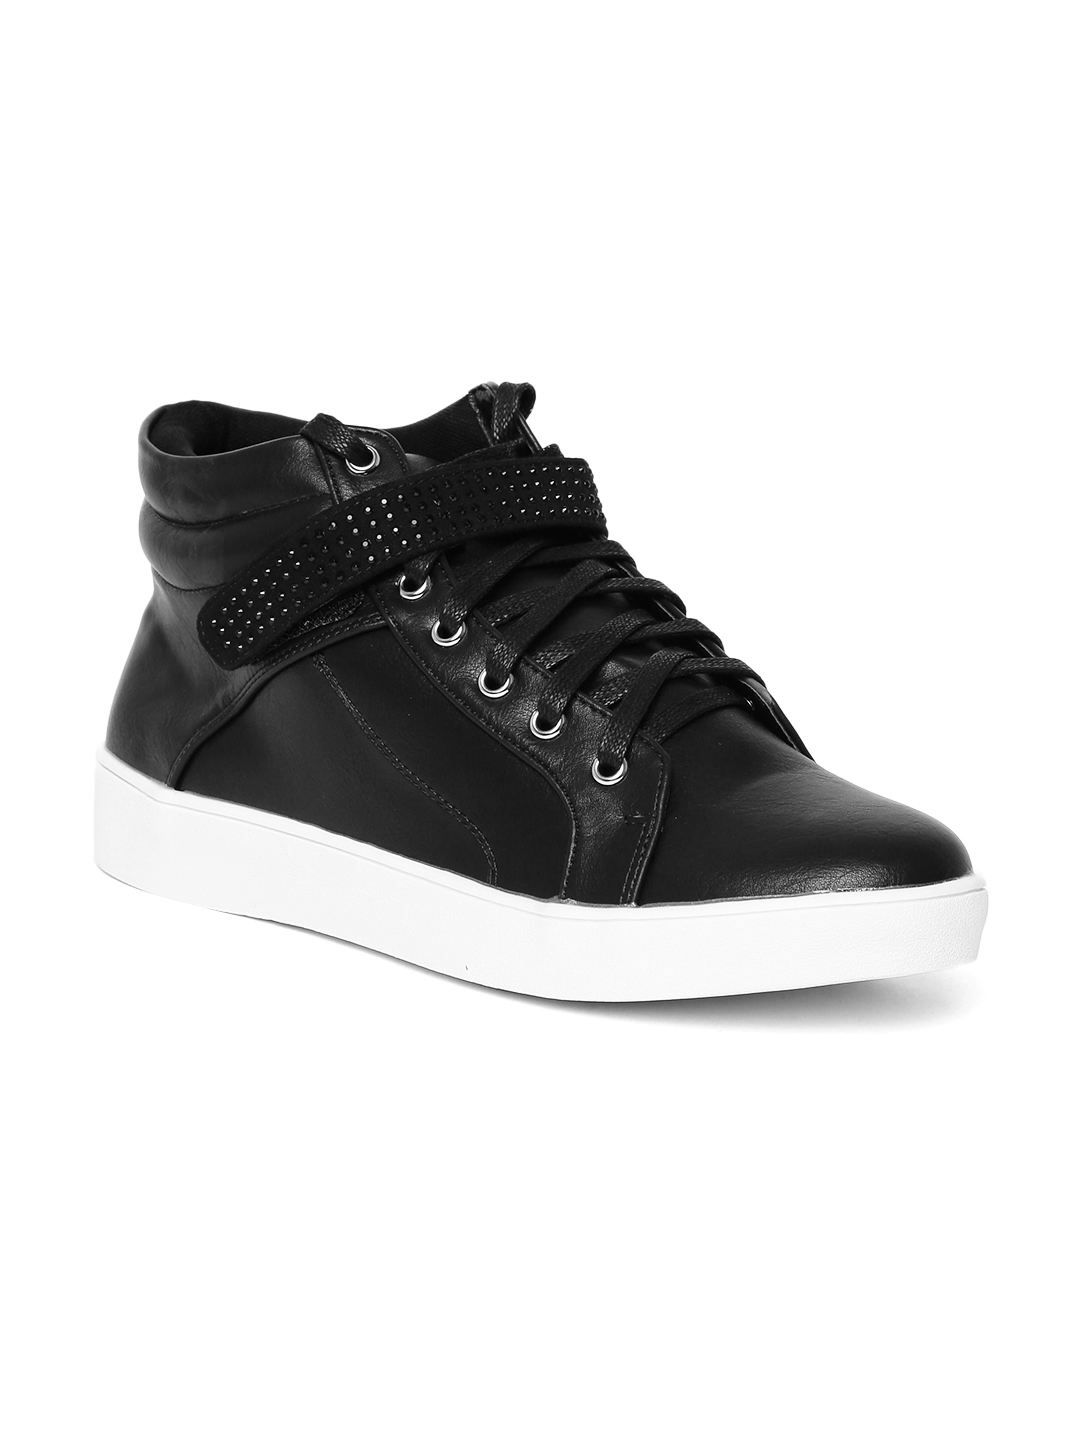 cba08c5301 Buy Carlton London Women Black Solid Mid Top Sneakers - Casual Shoes ...